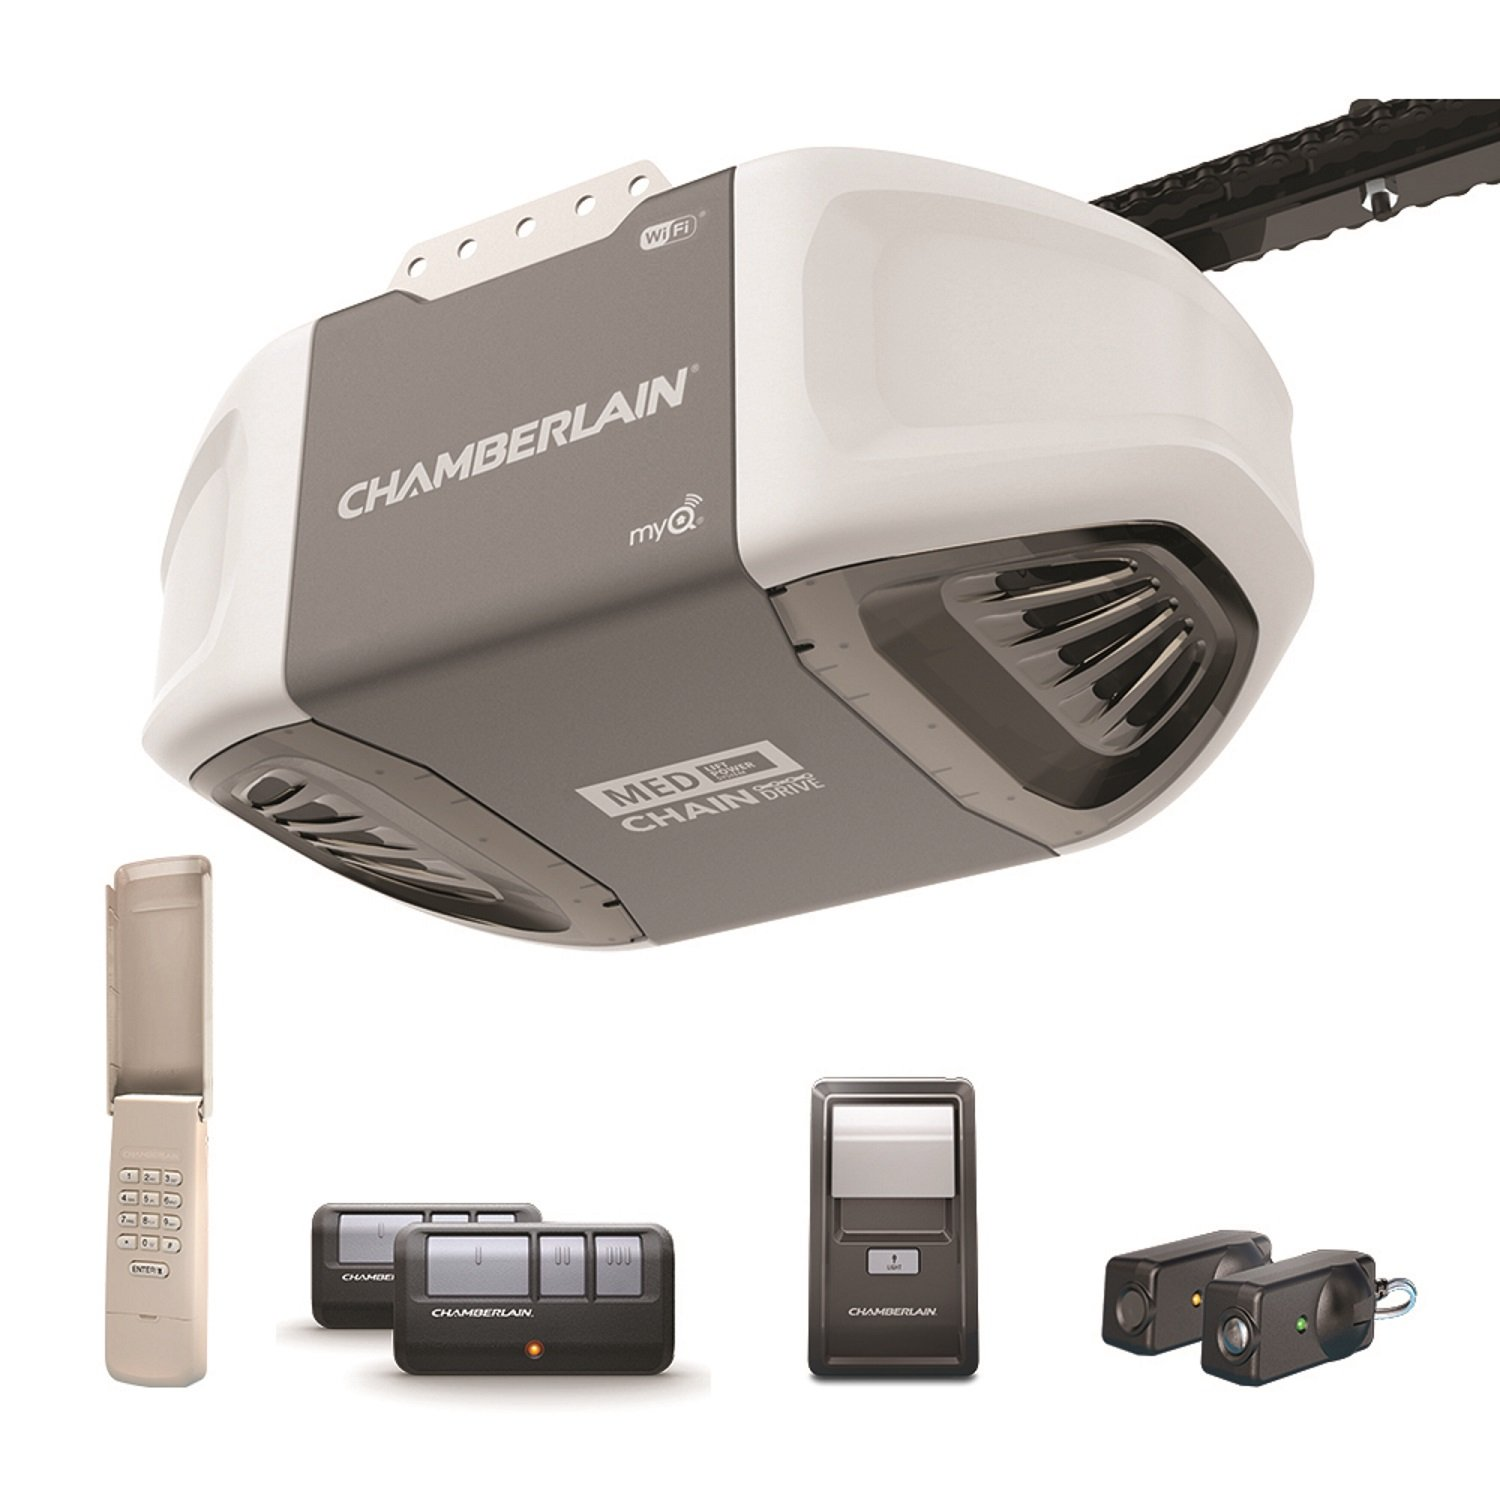 Chamberlain C450 Smartphone-Controlled Durable Chain Drive Garage Door Opener with Med Lifting Power, Pewter by Chamberlain